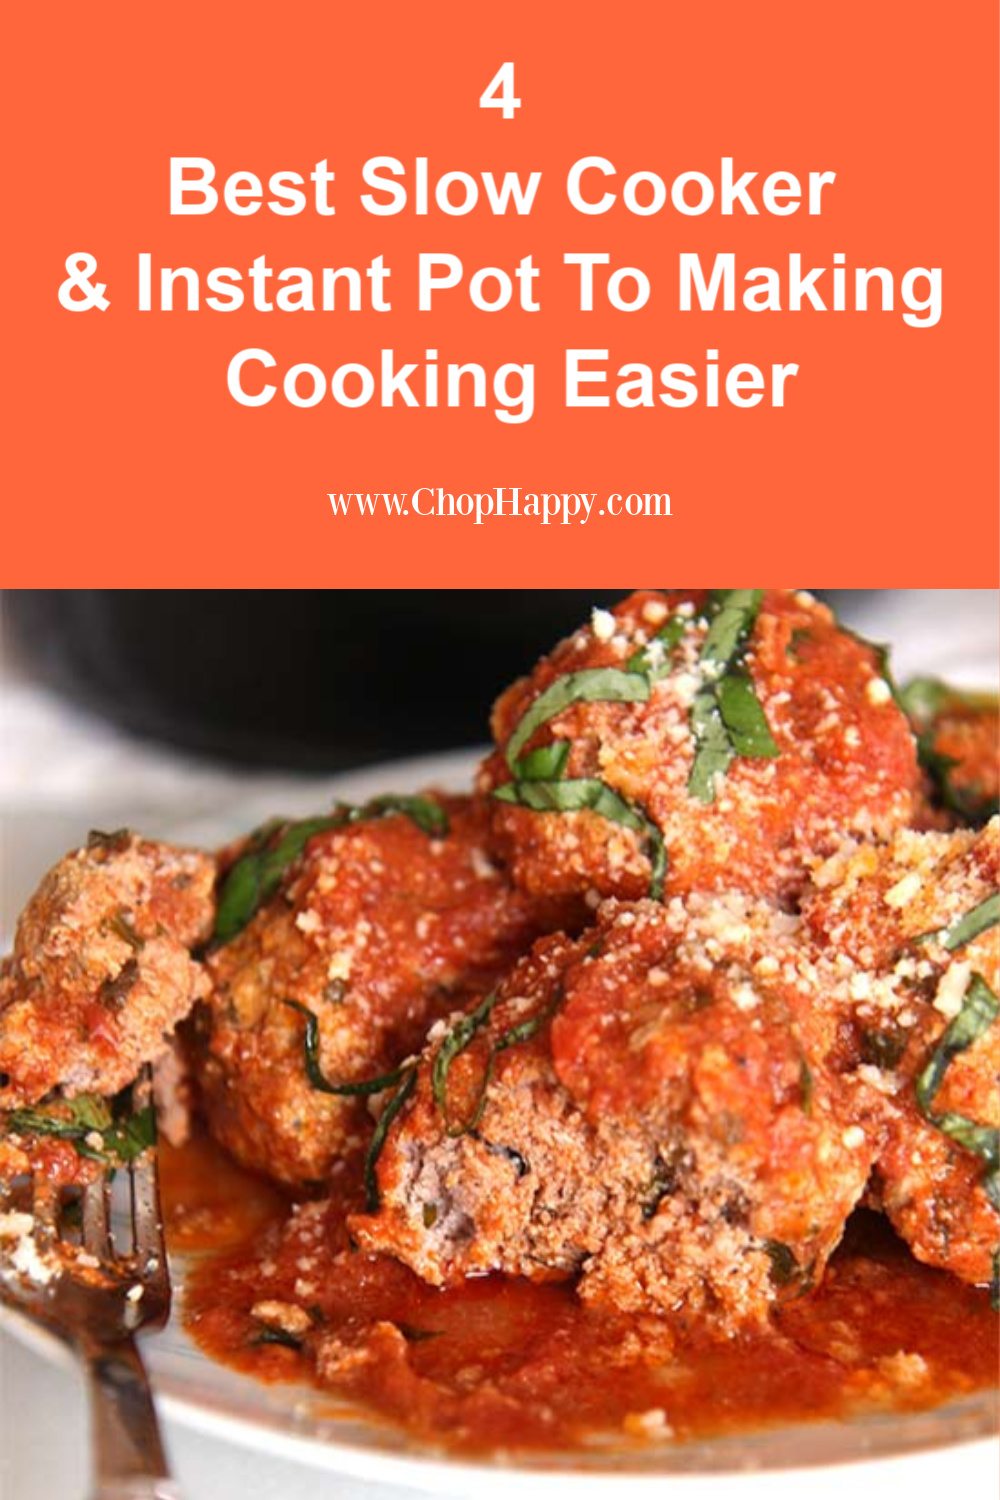 4 Best Slow Cookers / Instant Pots To Making Cooking Easier. Getting a instant pot, crock pot or slow cooker is life changing in the kitchen. It gives you more time to spend with your family. Make pasta, meatballs, or casseroles that are hot and waiting for you at dinner time. Happy Cooking! www.ChopHappy.com #slowcooker #instantpot